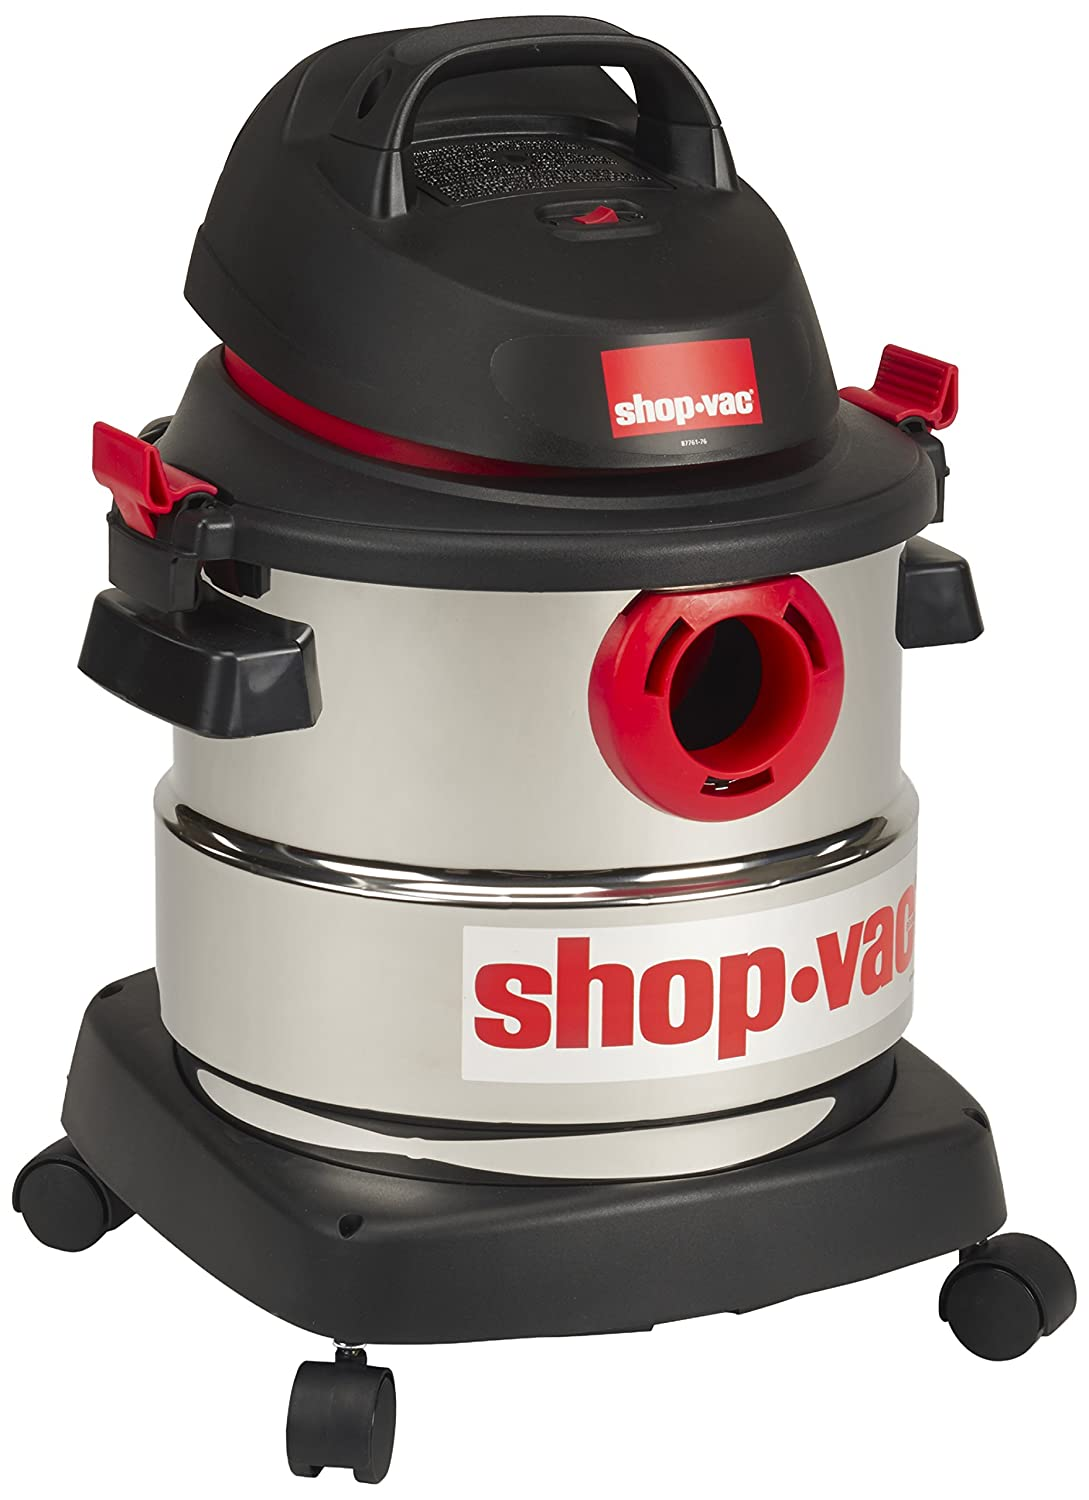 shop vac, vacuum shop, shop vac models, wet dry shop vac, shop vac vacuum, shop vac wet dry vacuum, shop vacuum cleaner, shop vac brand, shop vac 87761 53, vac com, shop vac pro, shop va, shop vac sizes, shop vac quiet series, shop vac 87758 13, 2 gallon shop vac, shop vac prices, shop vac ultra pro, wall shop vac, shop vac vacuum cleaner